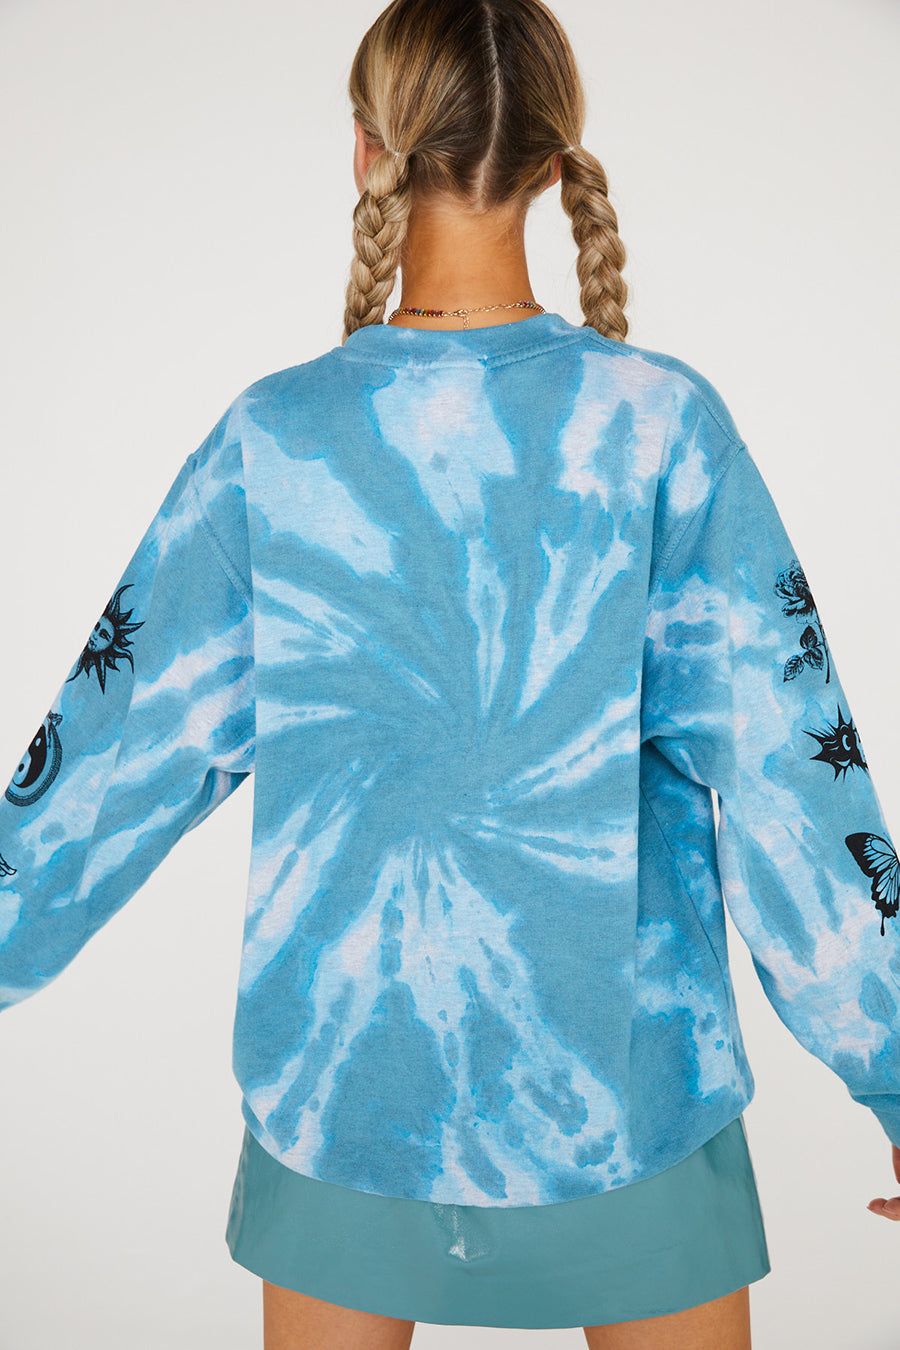 TIE DYE ETCHED GRAPHIC SWEAT